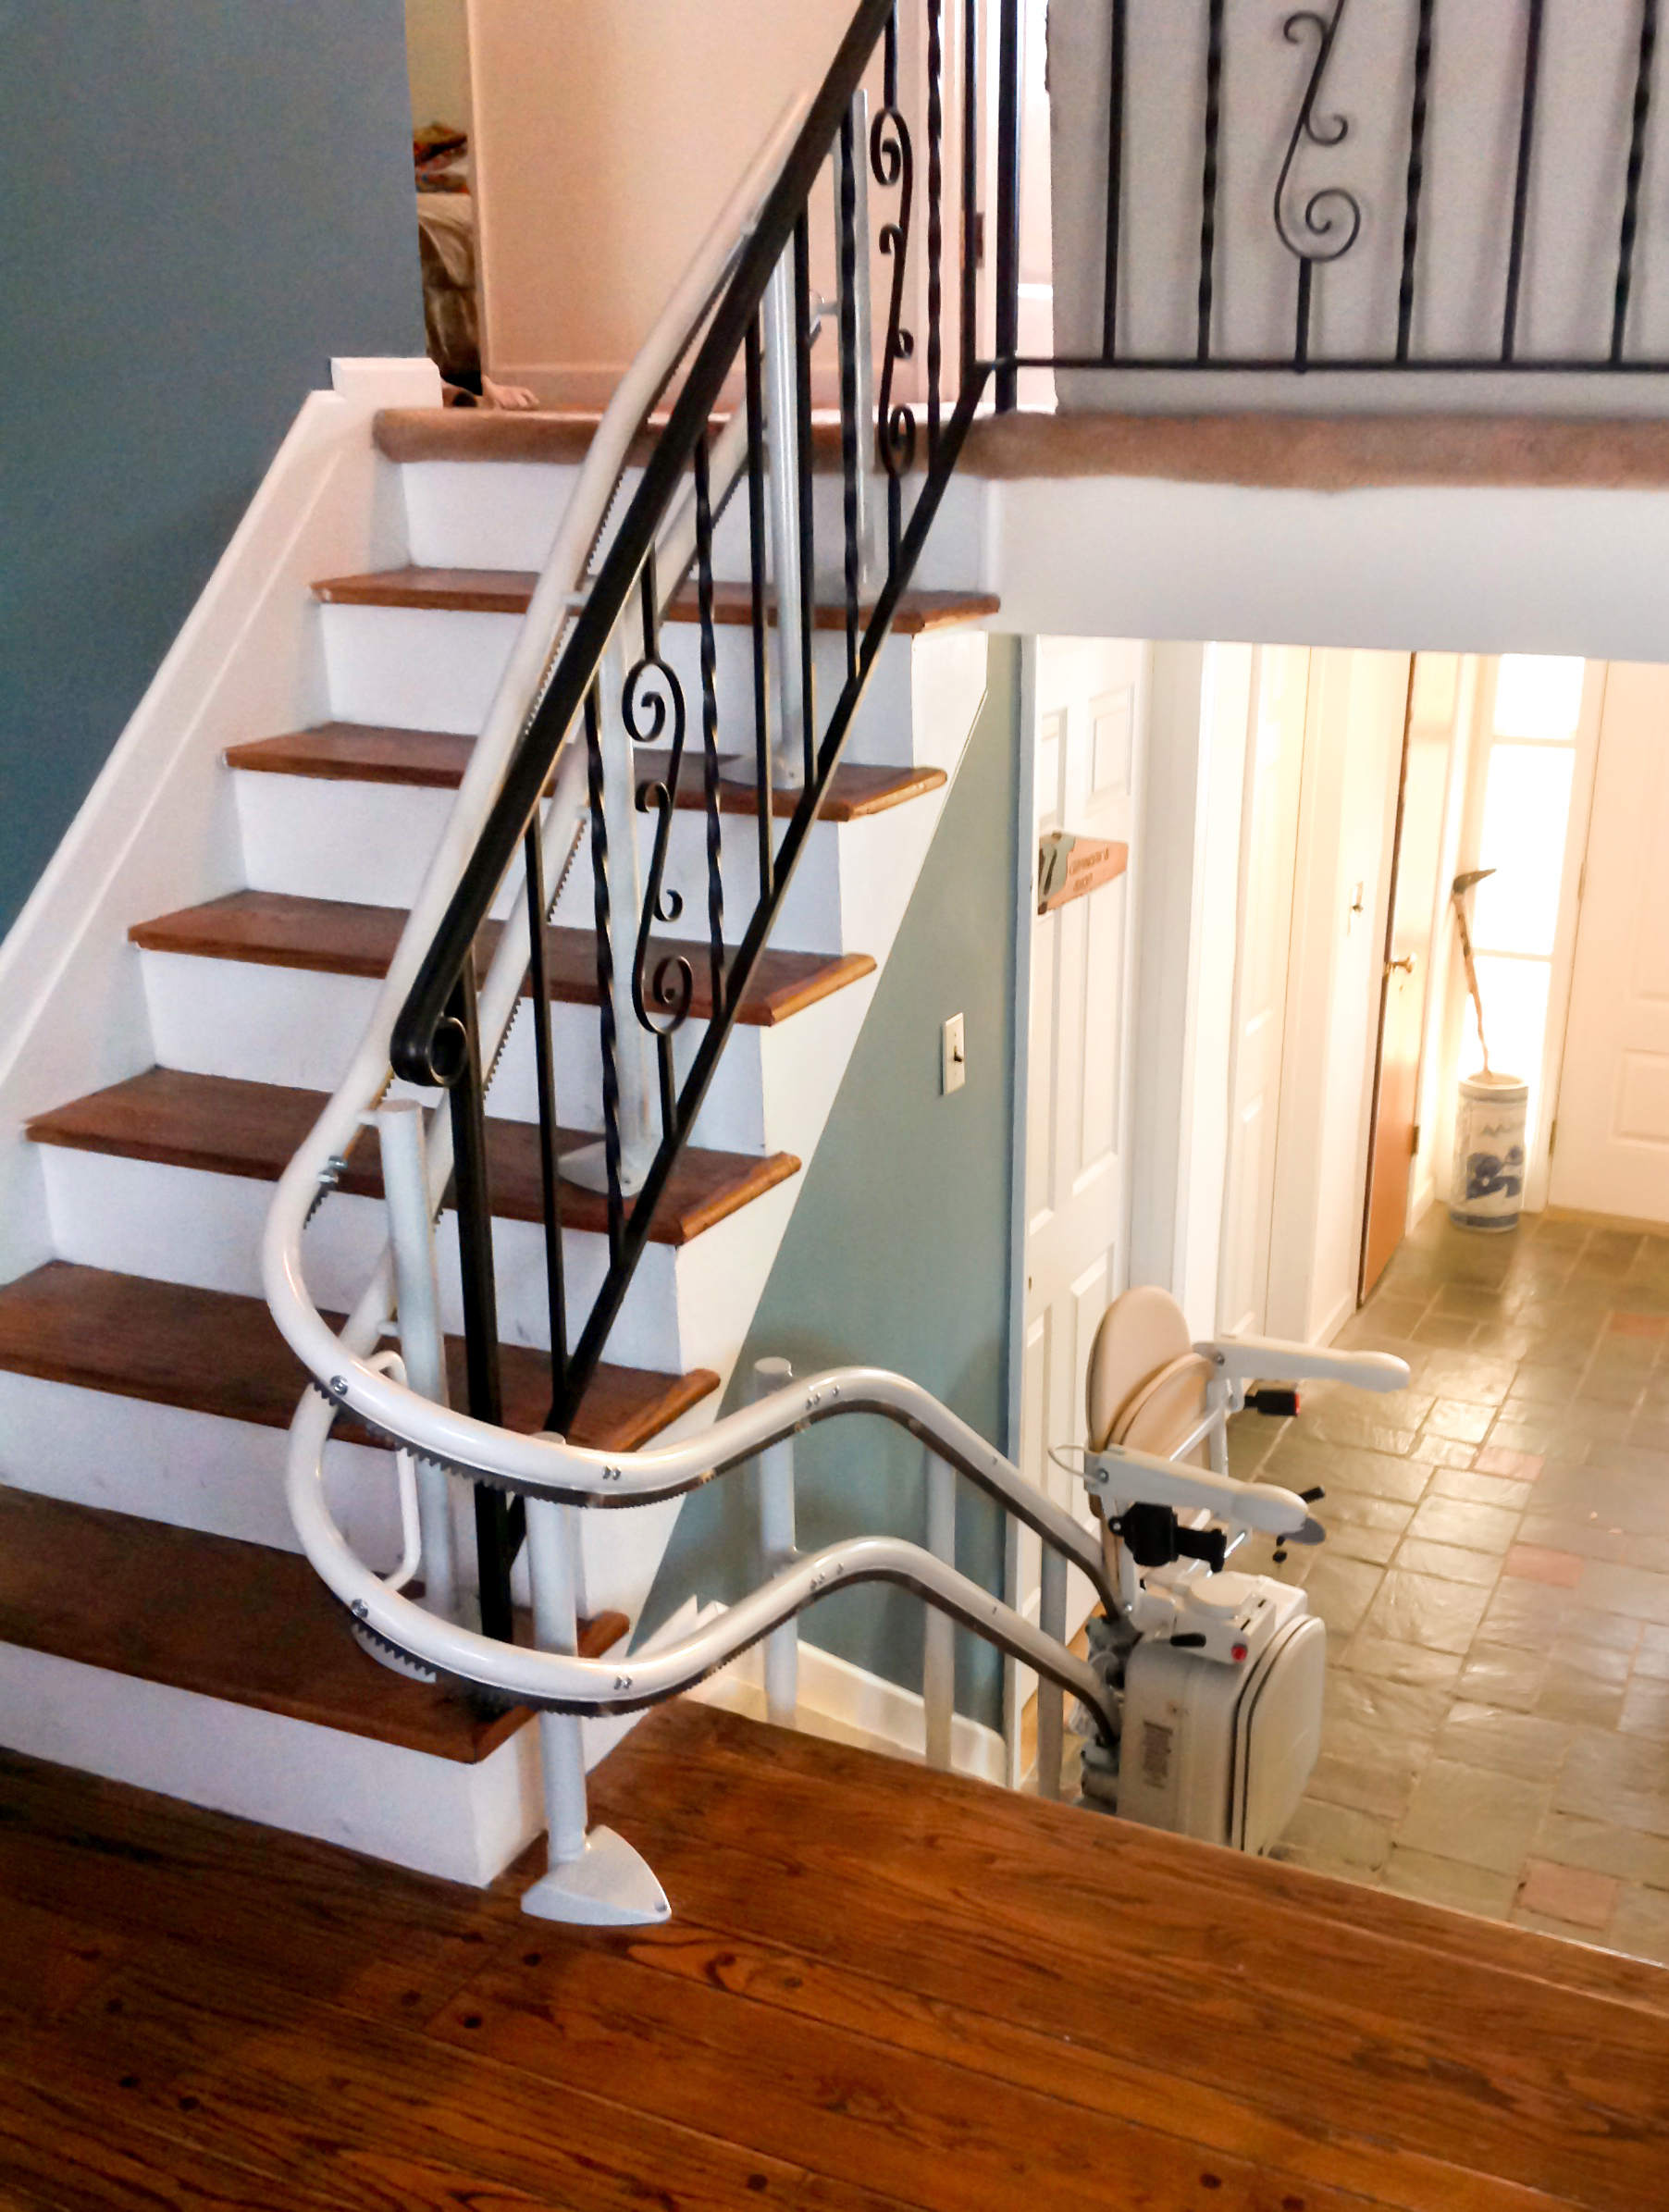 Curved Rail Stair Lifts, Stairlift For Curved Stairs